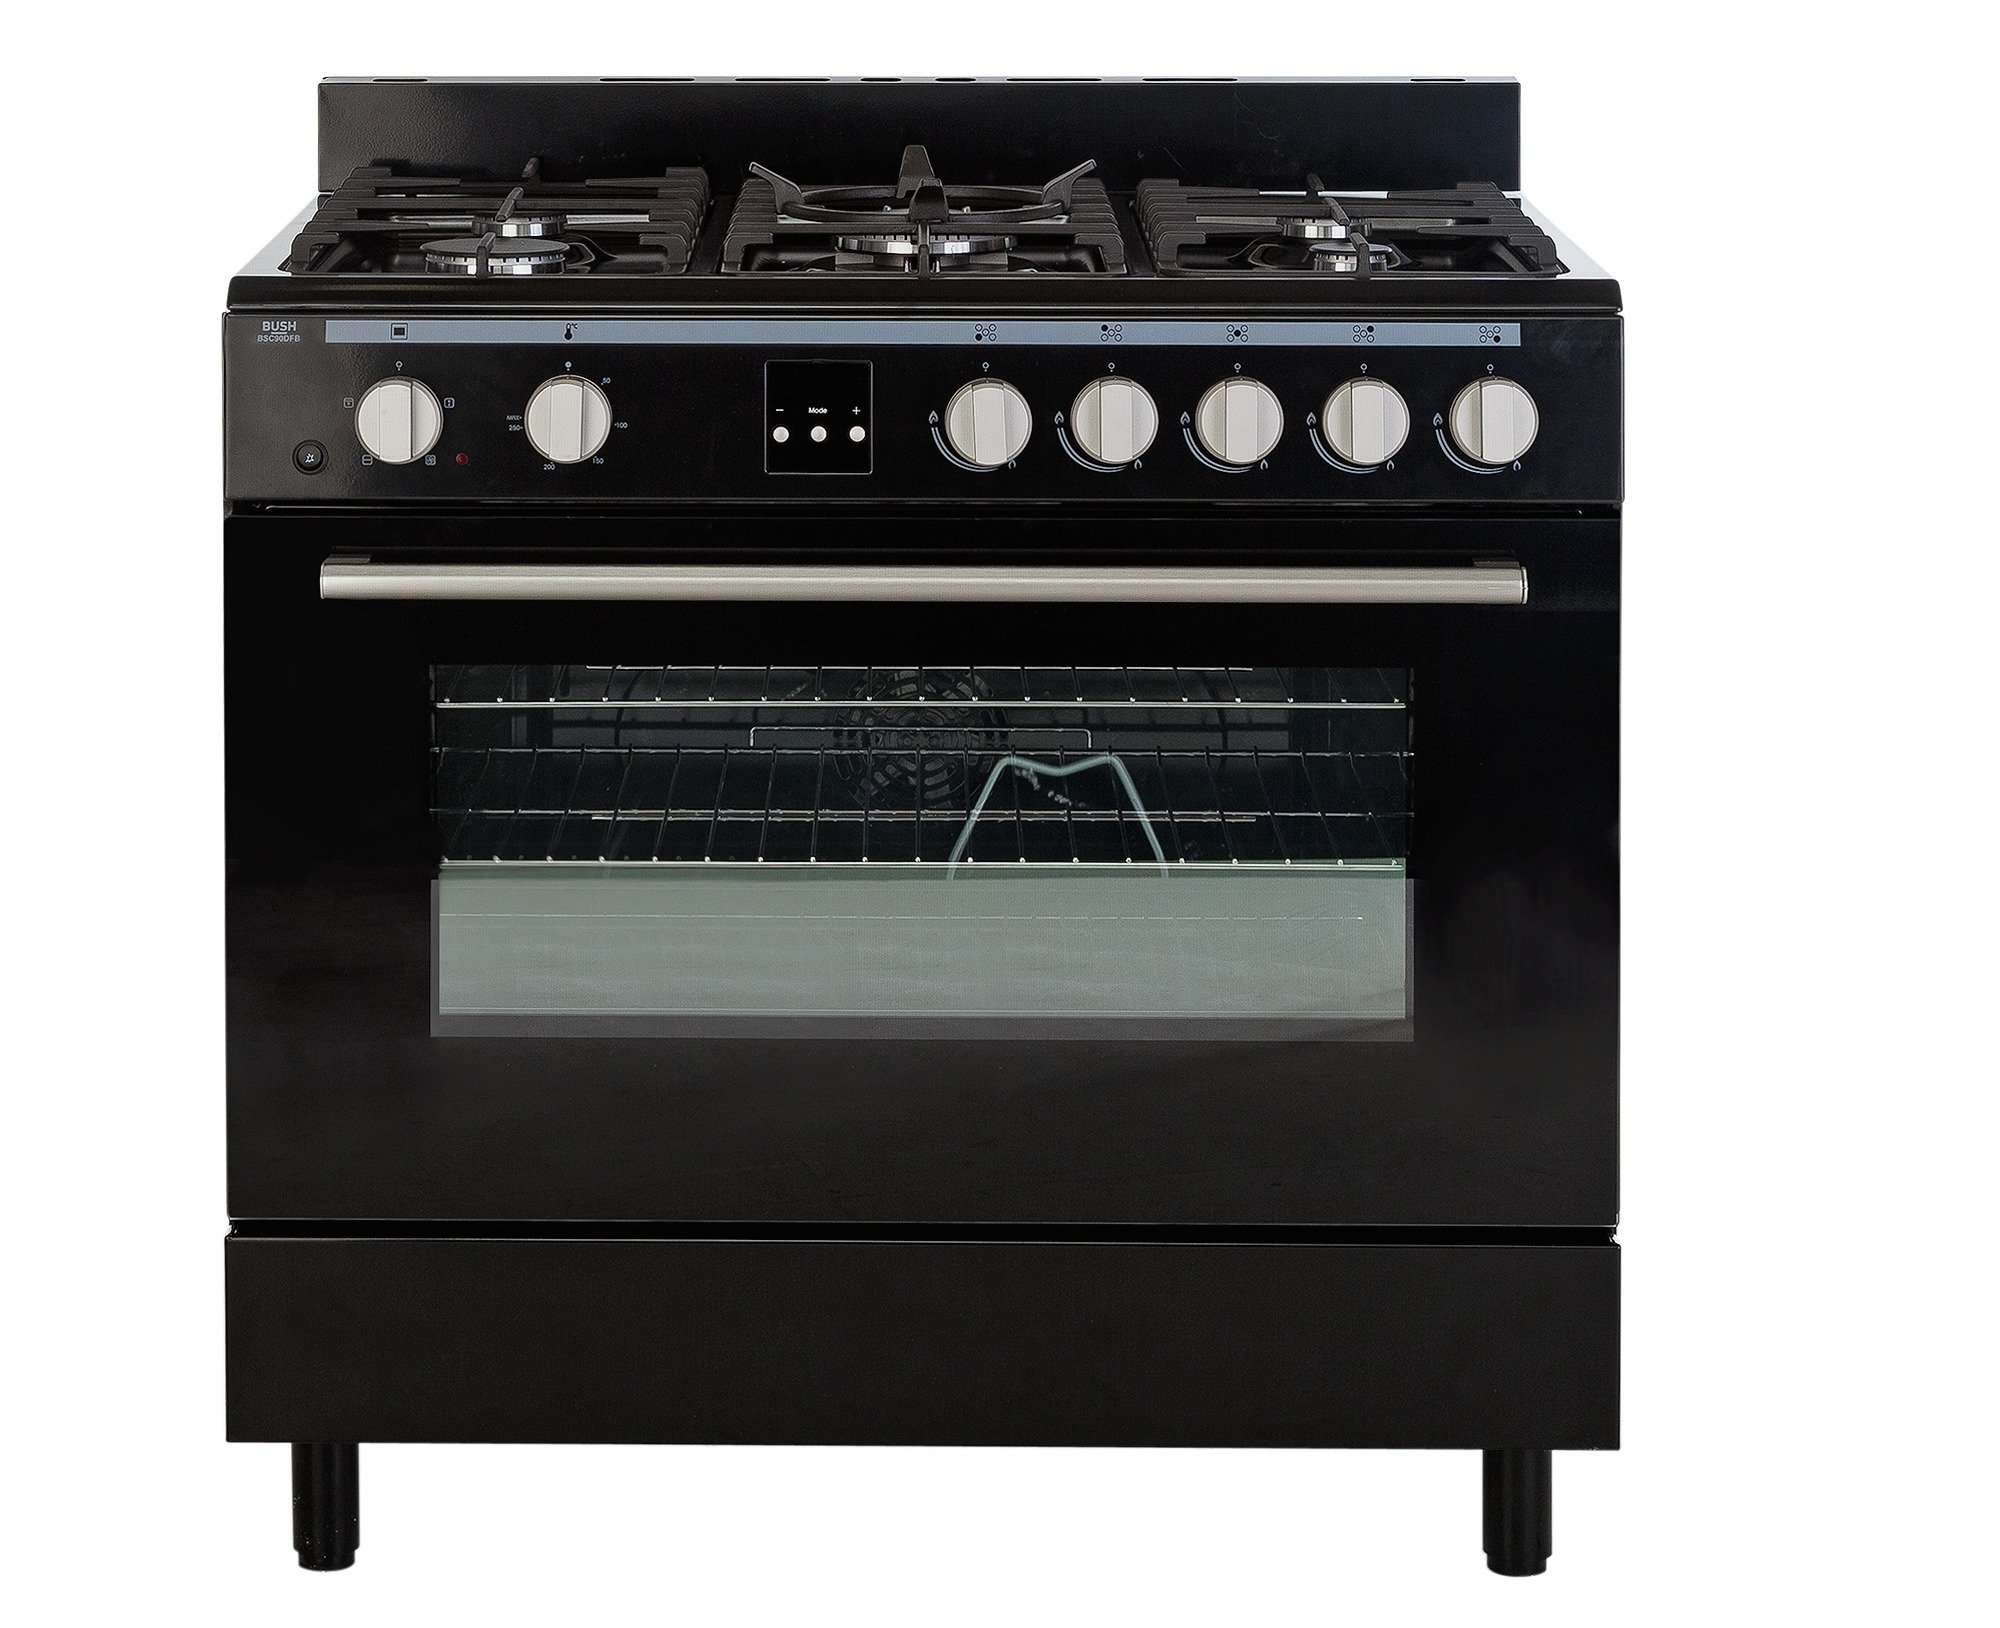 Image of Bush BSC90DFB Dual Fuel Range Cooker - Black